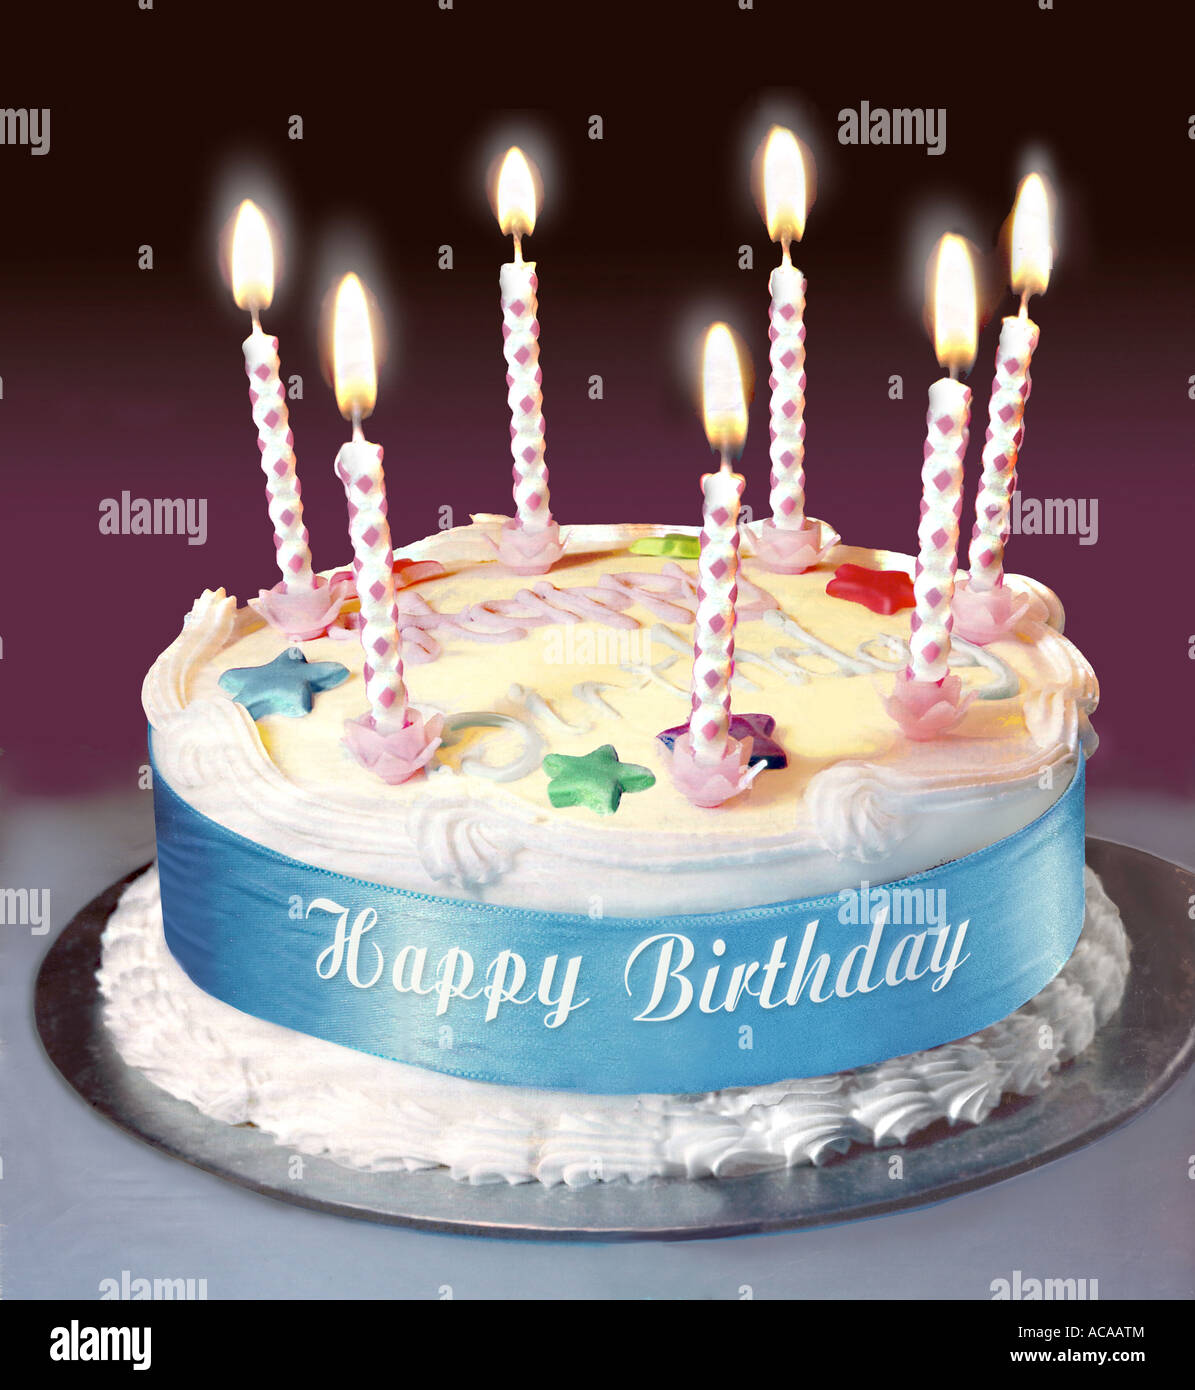 Happy Birthday Cake with candles Stock Photo, Royalty Free ...